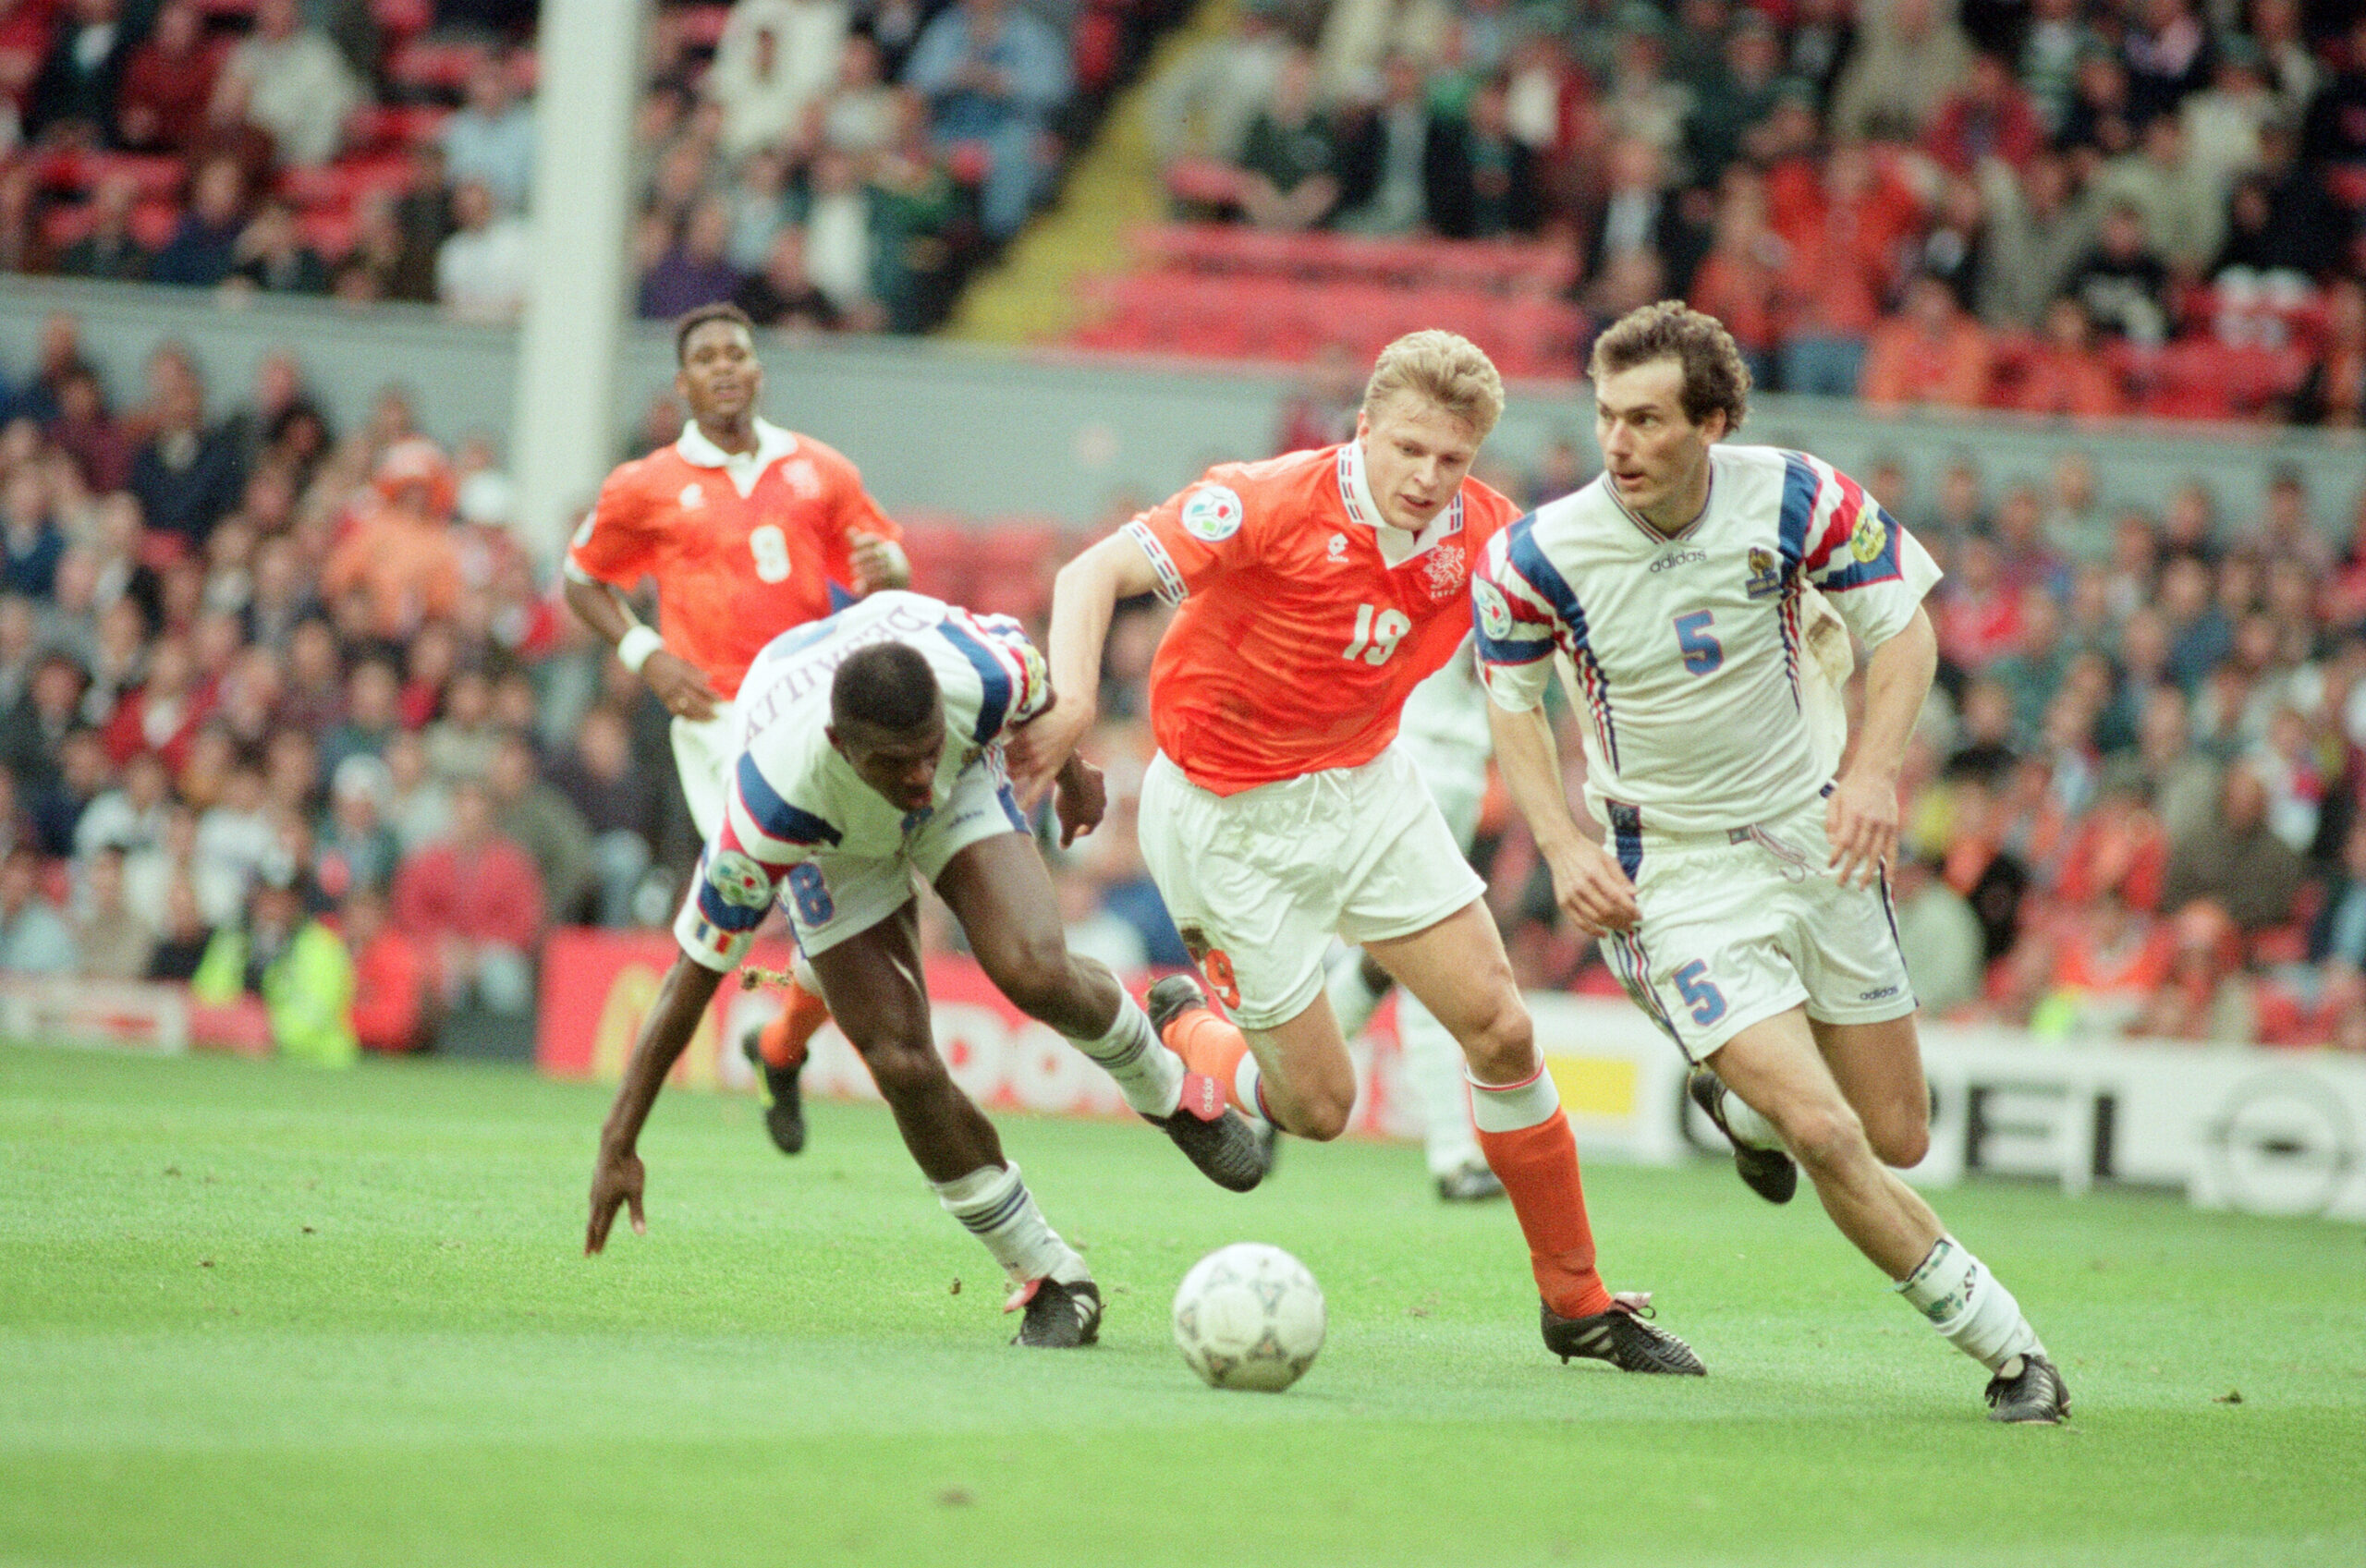 As live football returns to our TV screens, iNostalgia remembers when the UEFA Euro 96 championships came to Liverpool